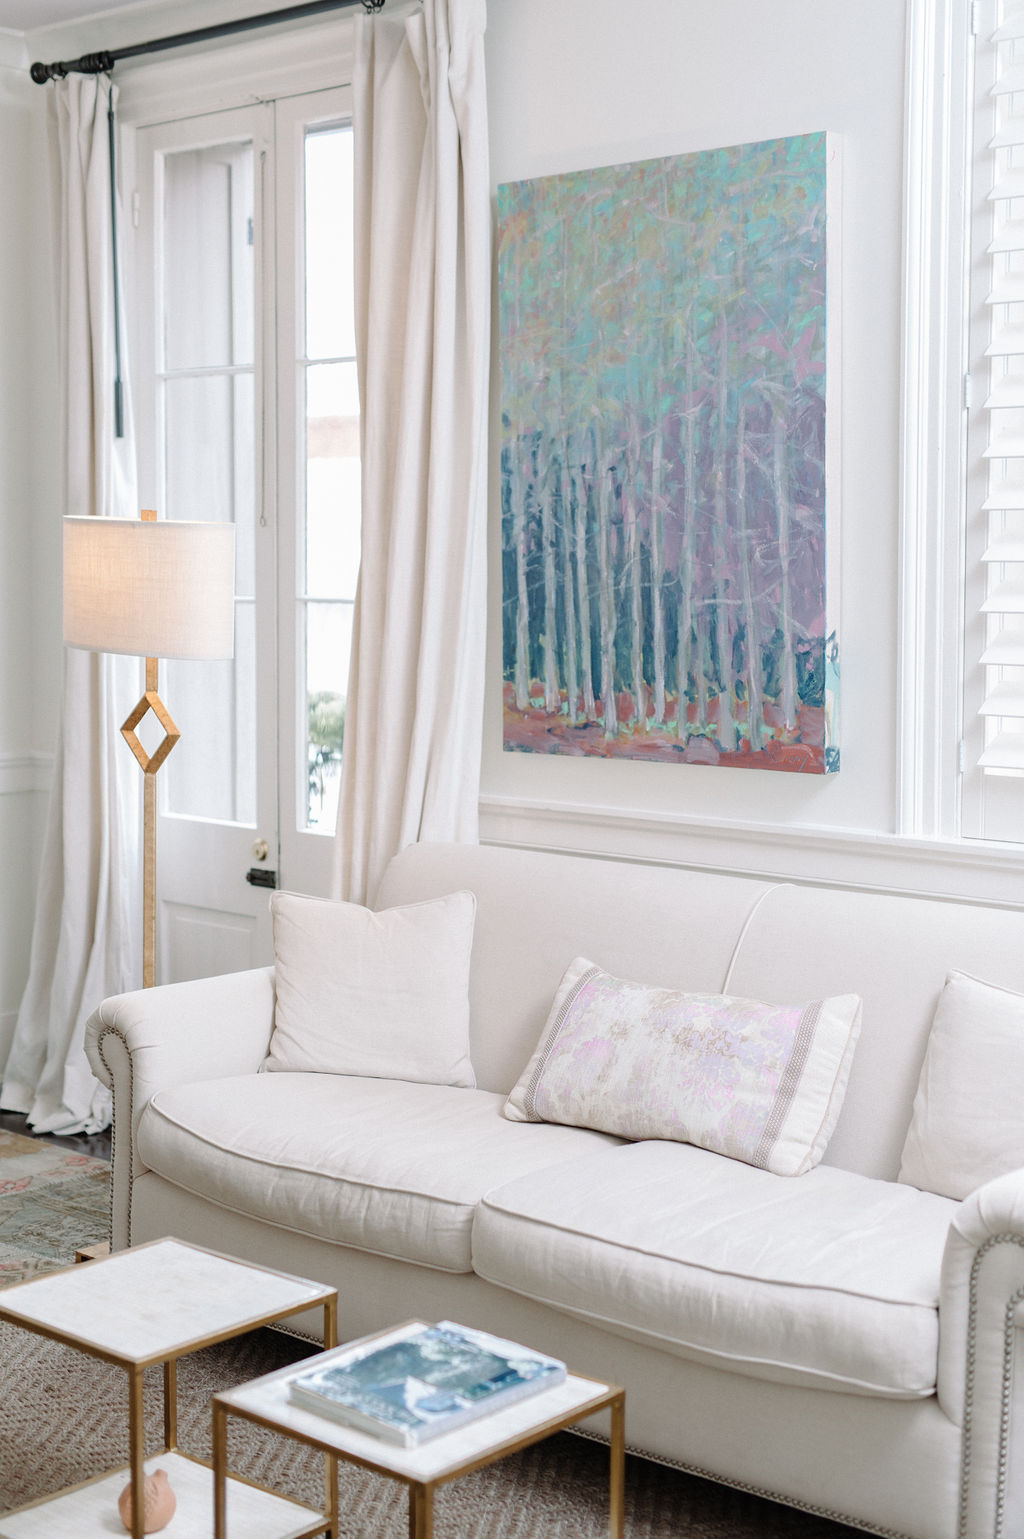 White couch under calming painting in sitting area of Room 2